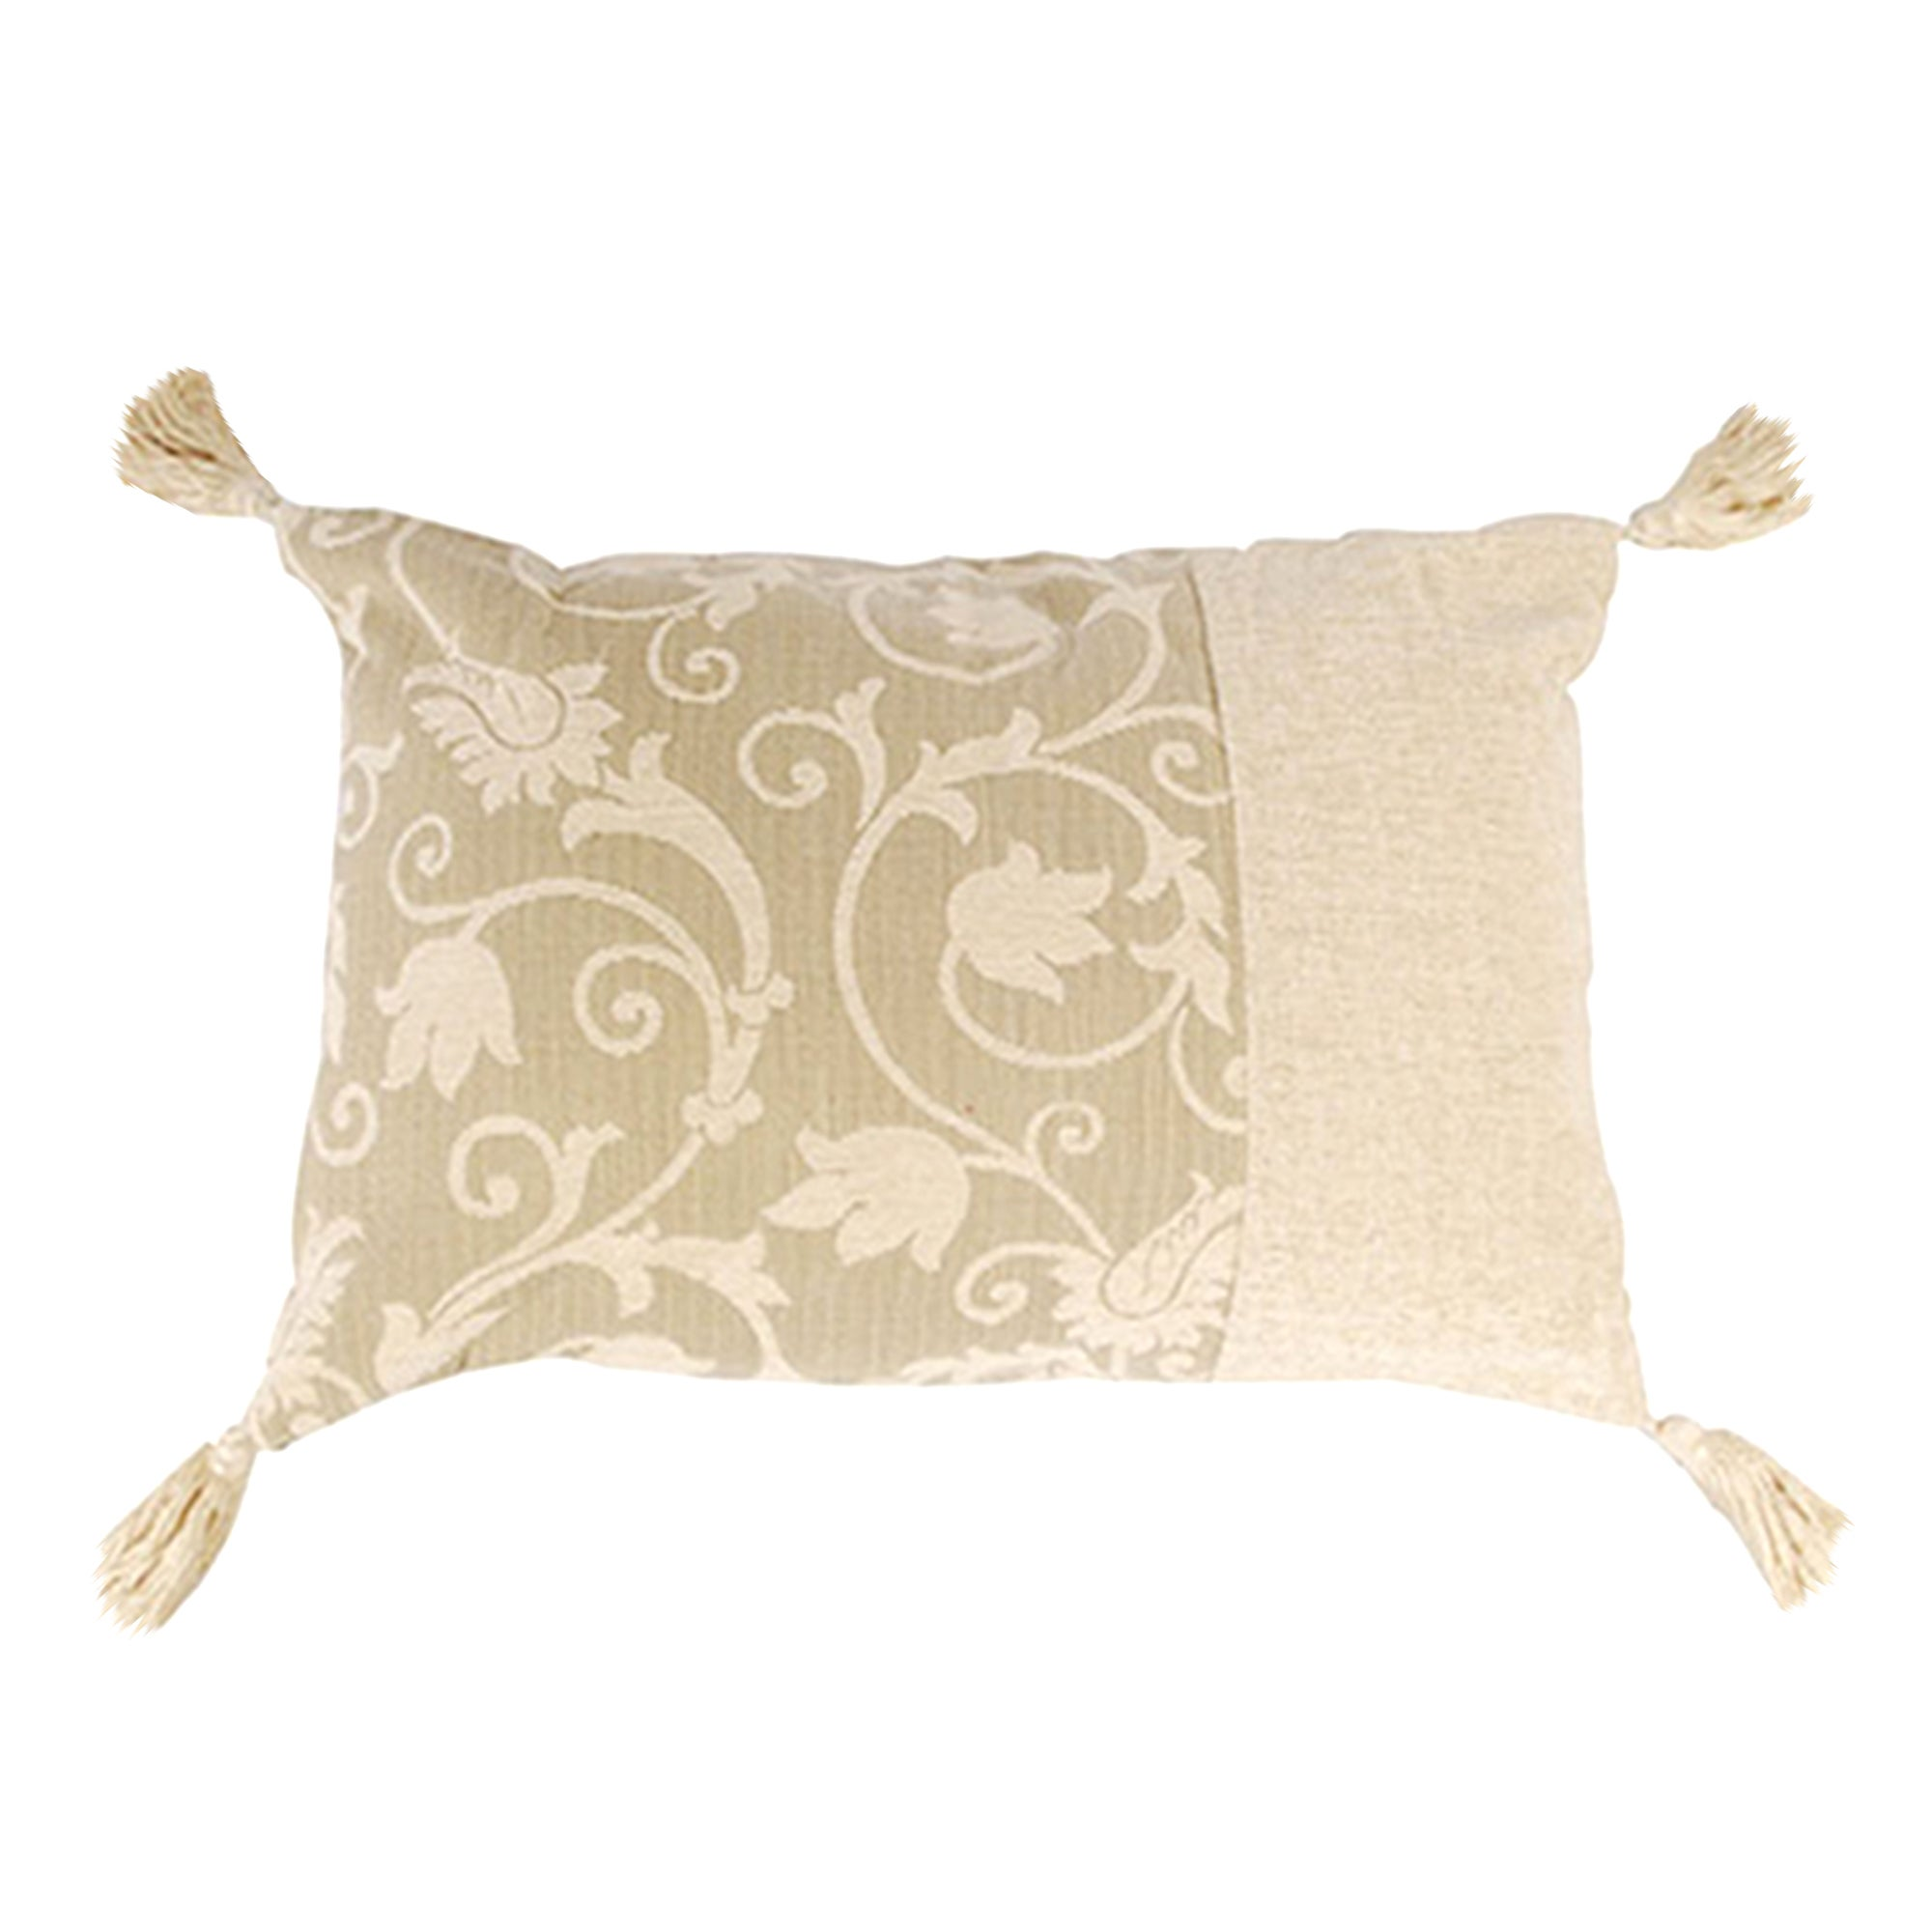 Scroll Tasselled Cushion